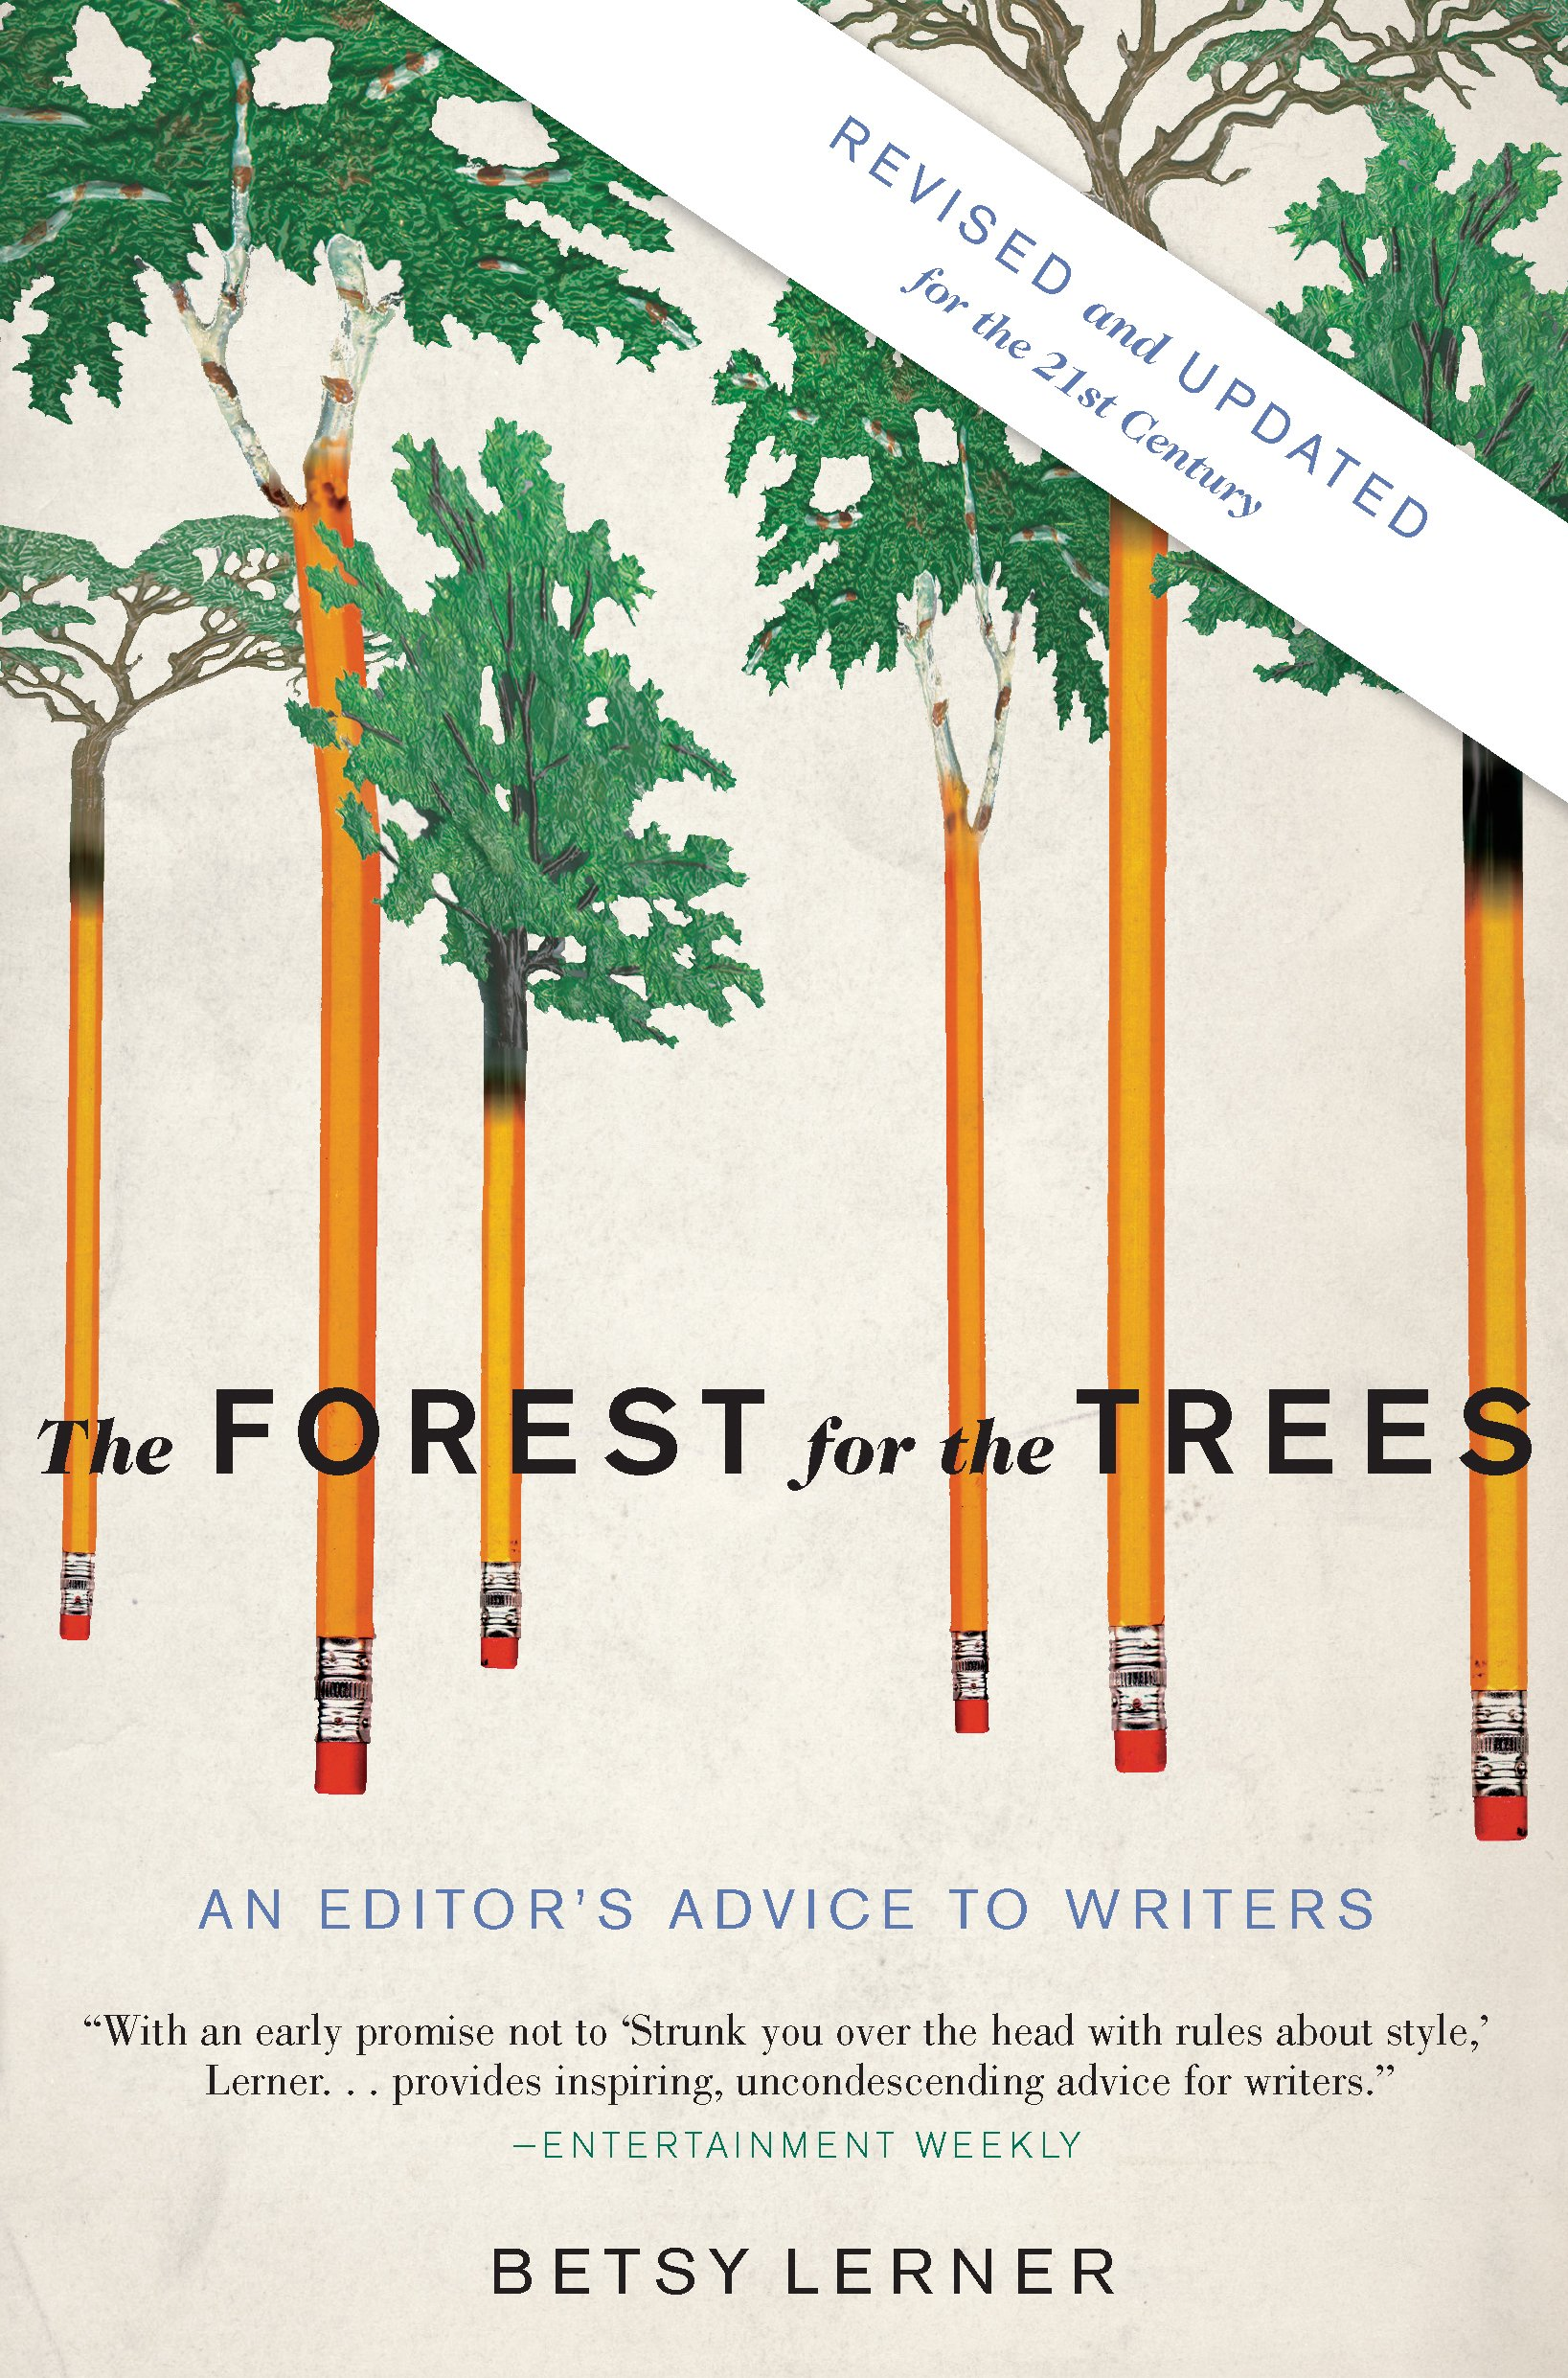 The Forest for the Trees, Betsy Lerner